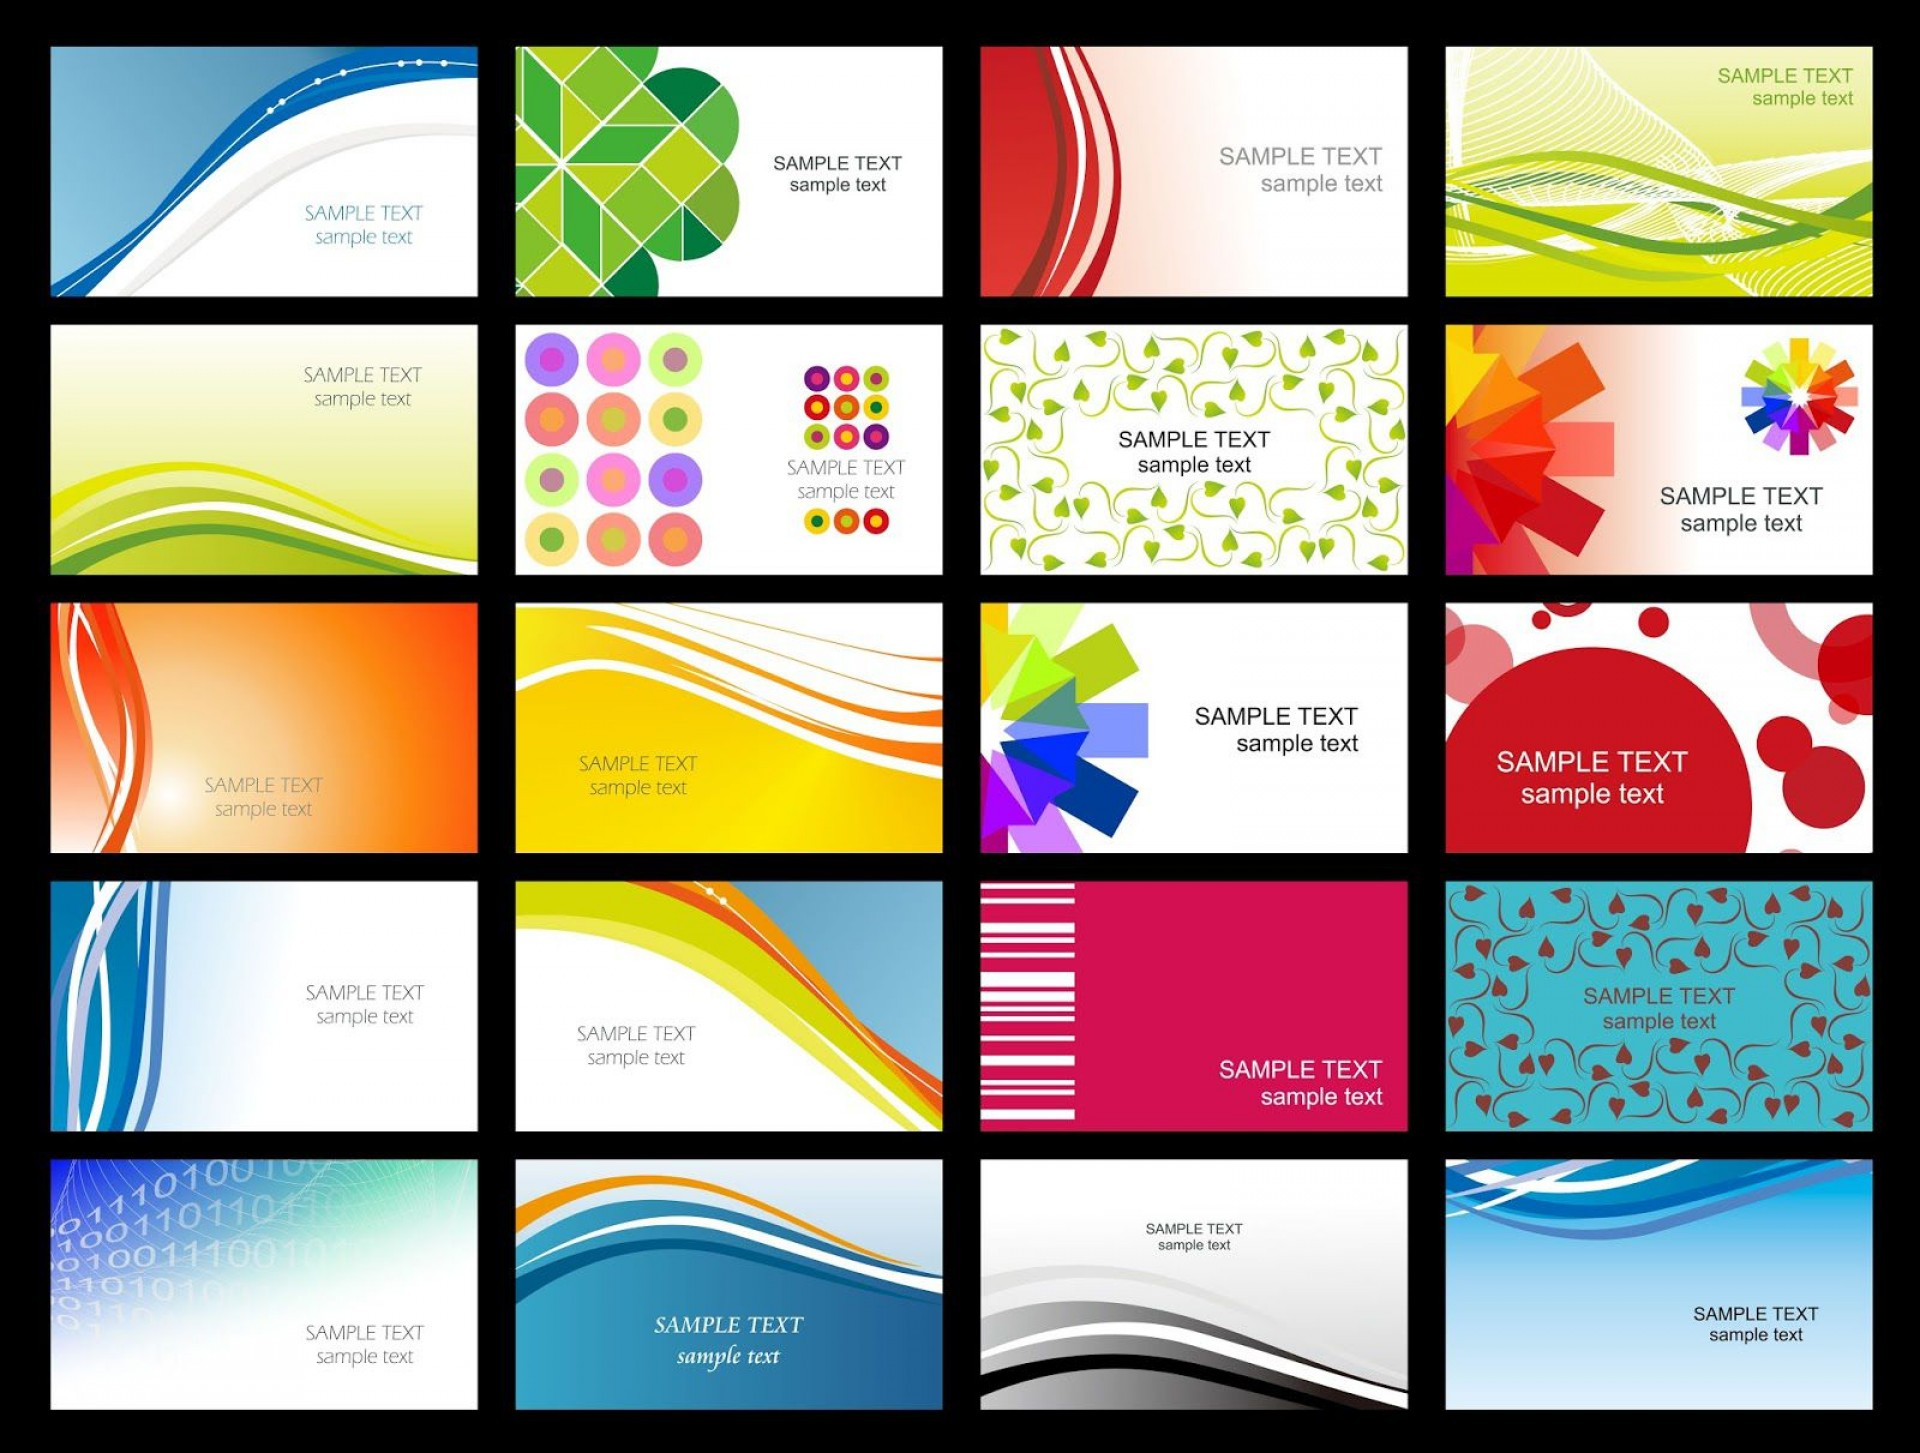 008 Striking Free Download Busines Card Template Concept  Microsoft Word Photoshop Psd Double Sided1920